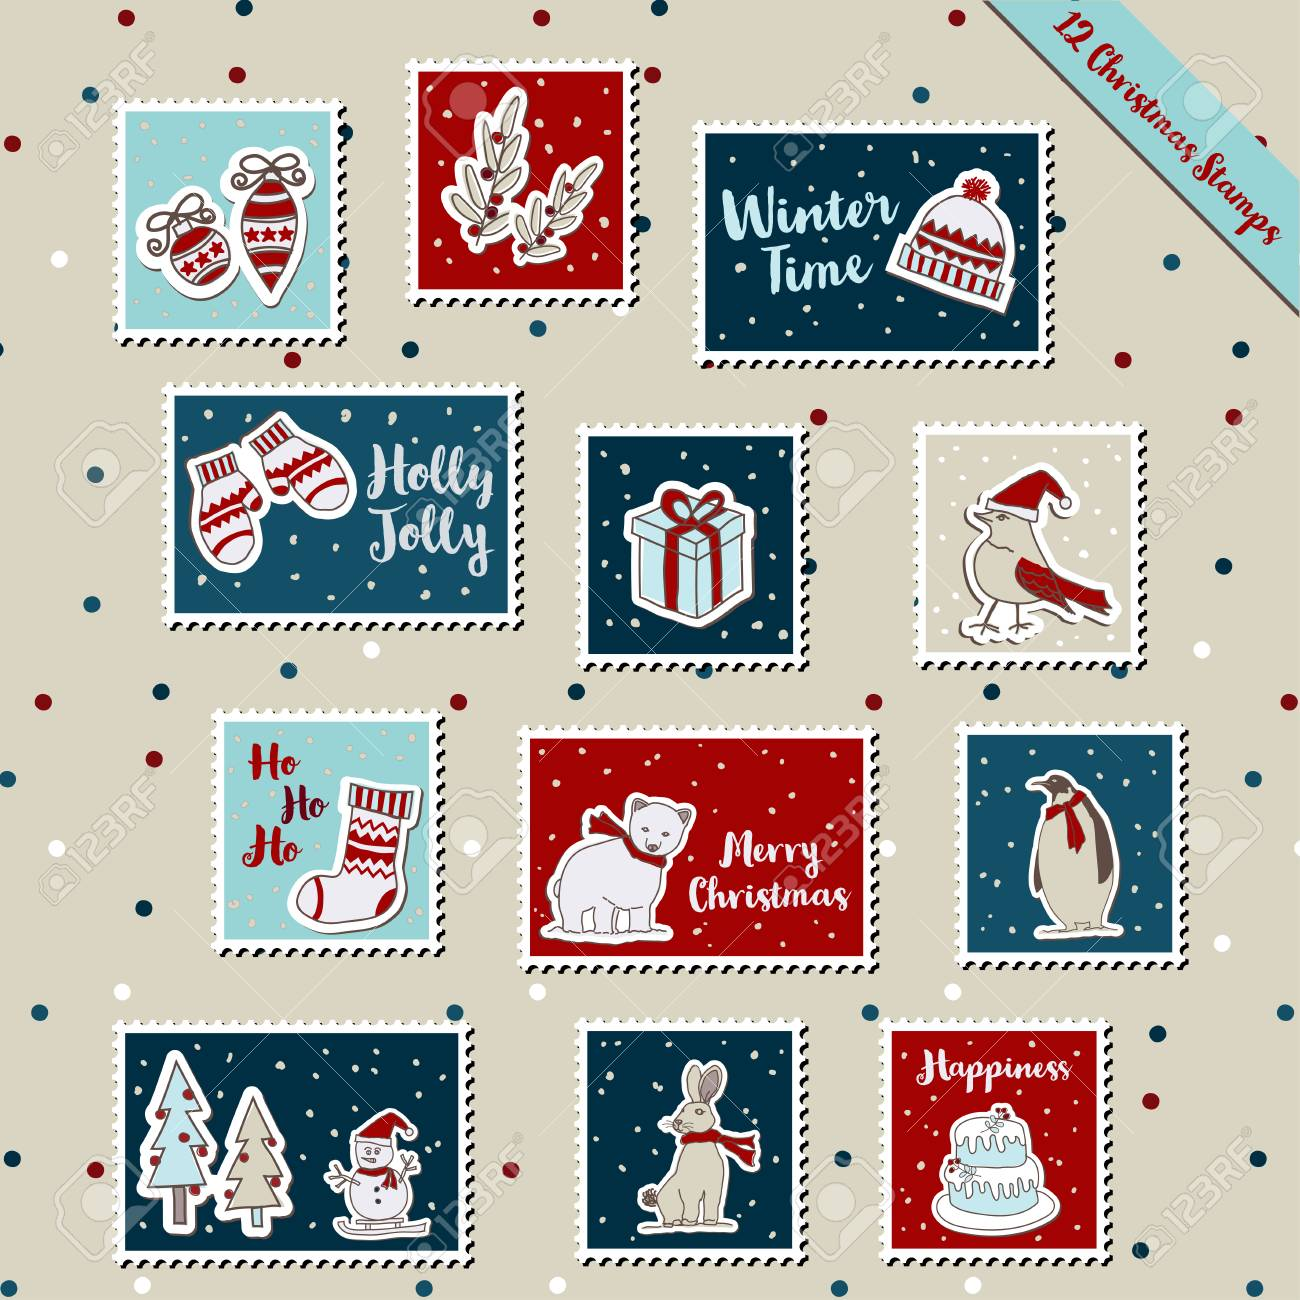 Christmas Stamps.A Set Of Christmas Stamps Postage Stamp Stickers Scrapbook